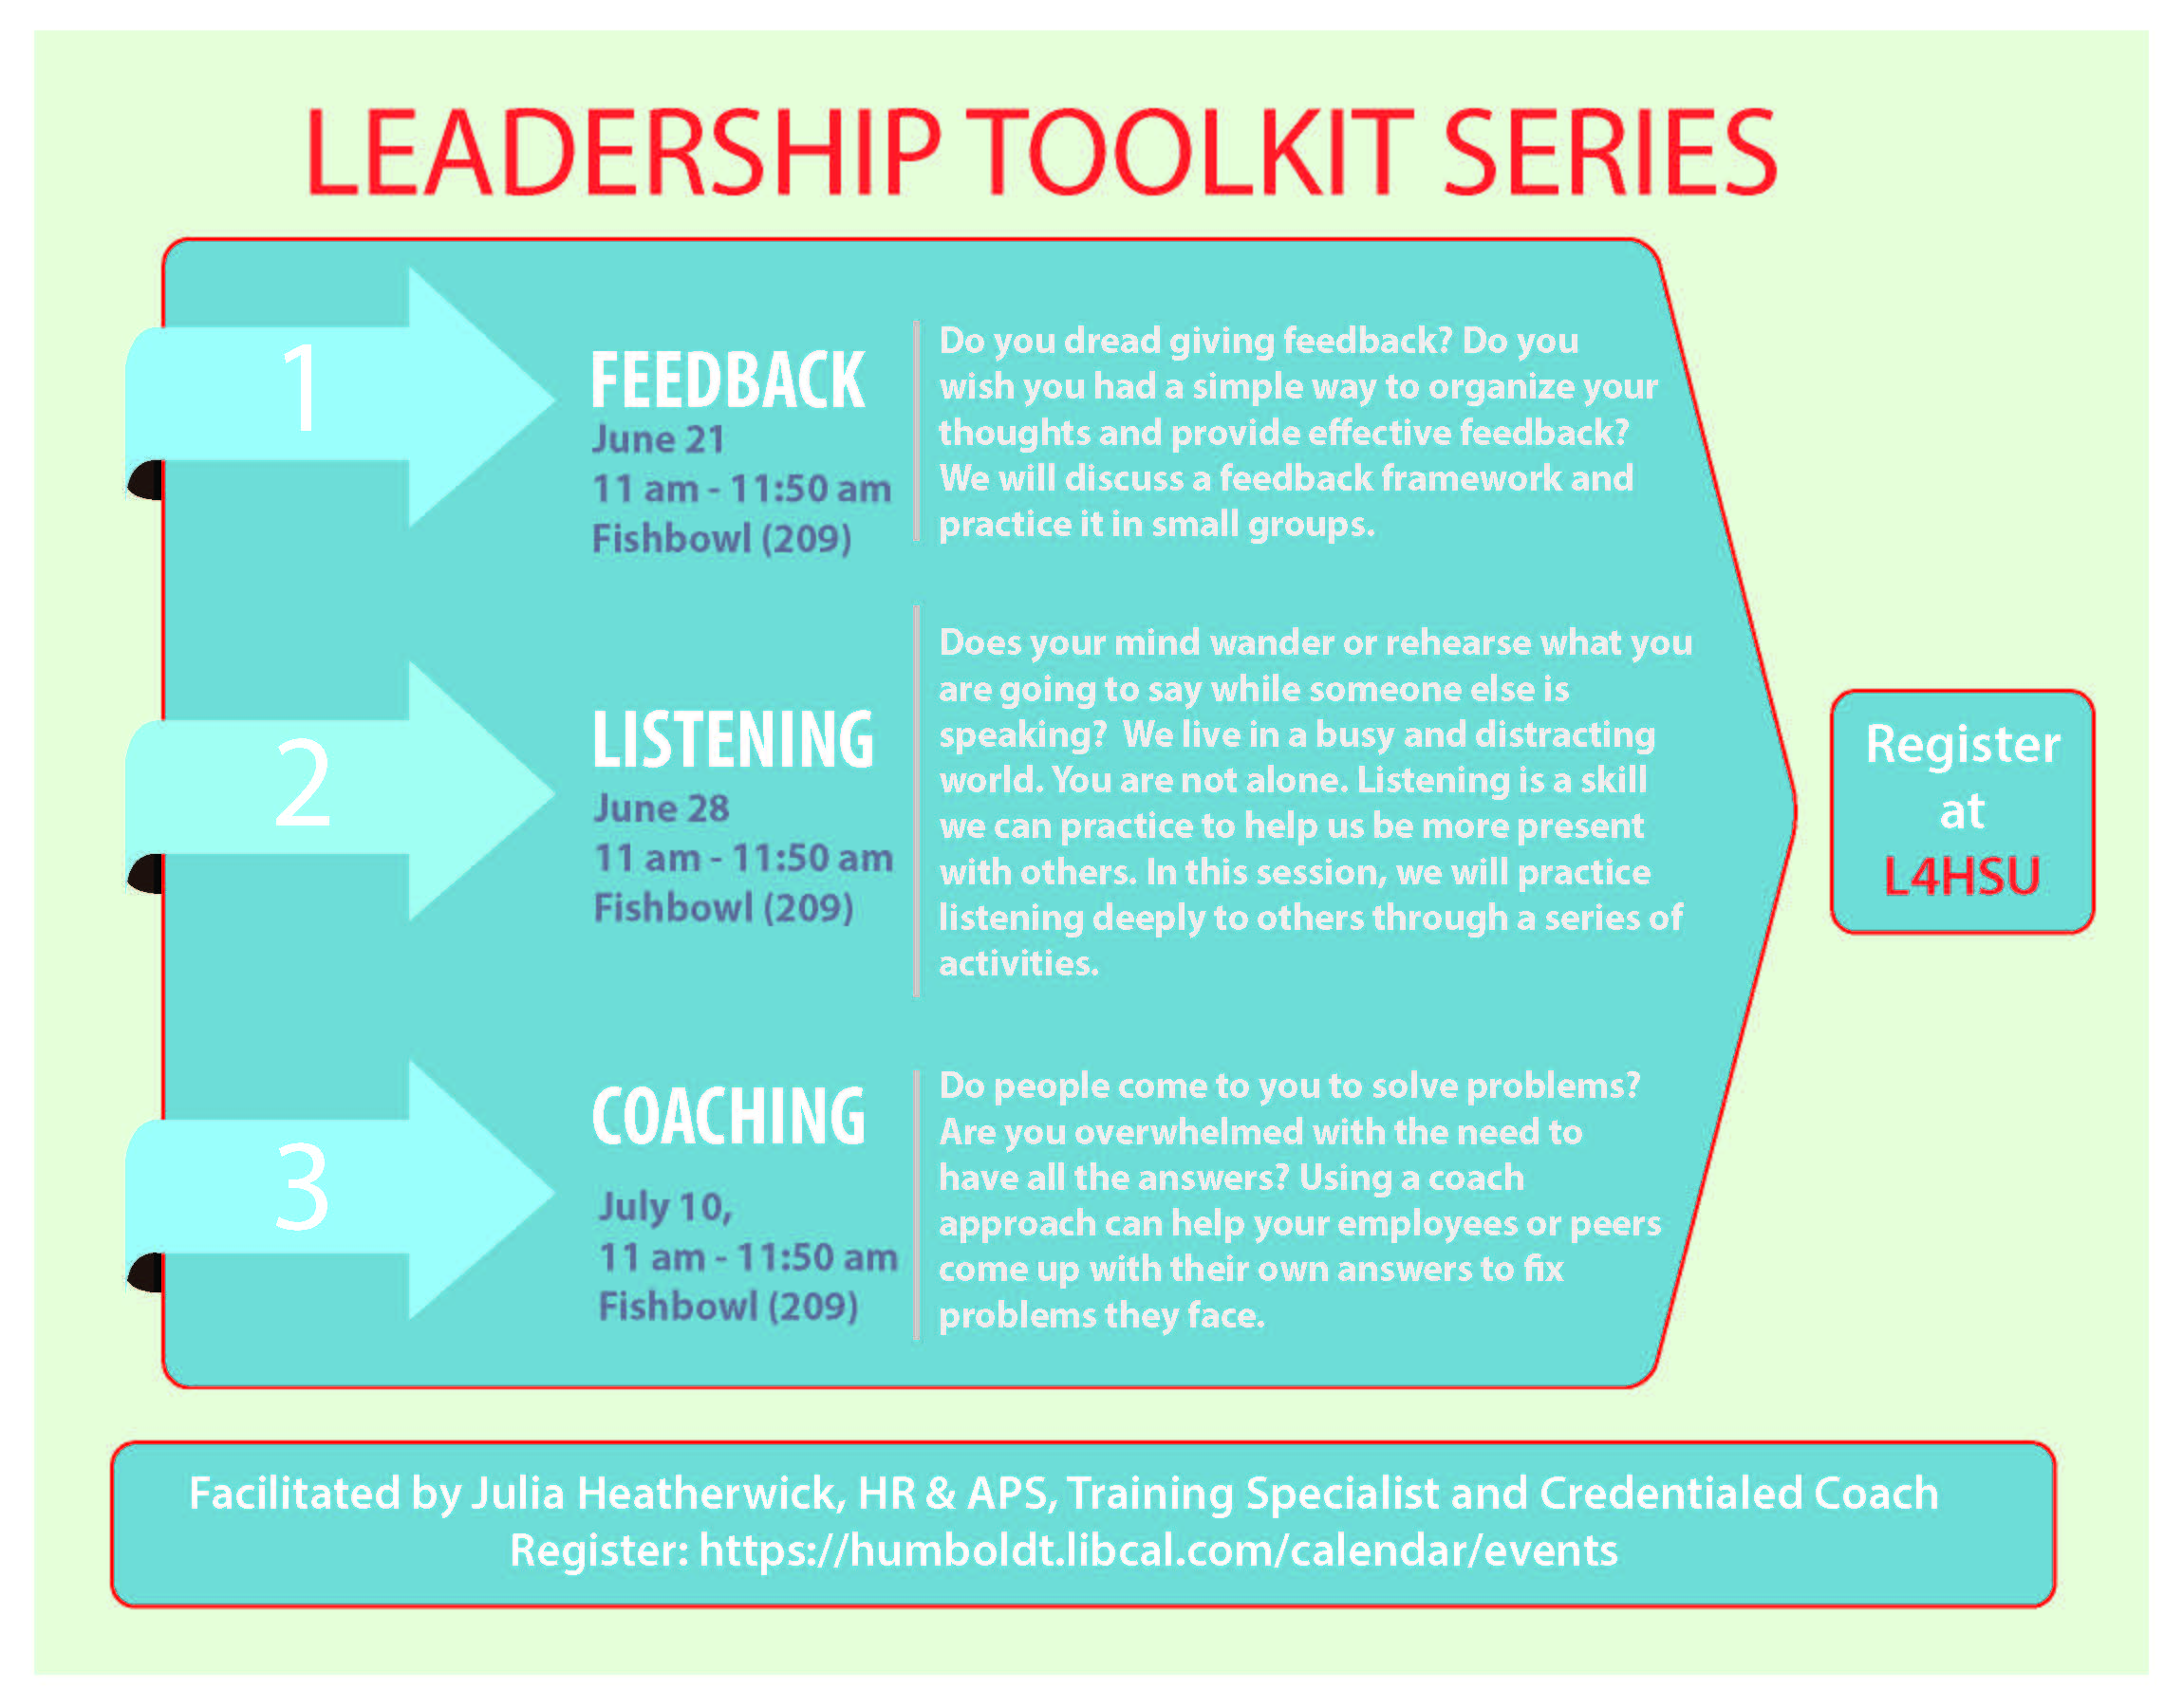 The Leadership Toolkit Series: Providing Feedback